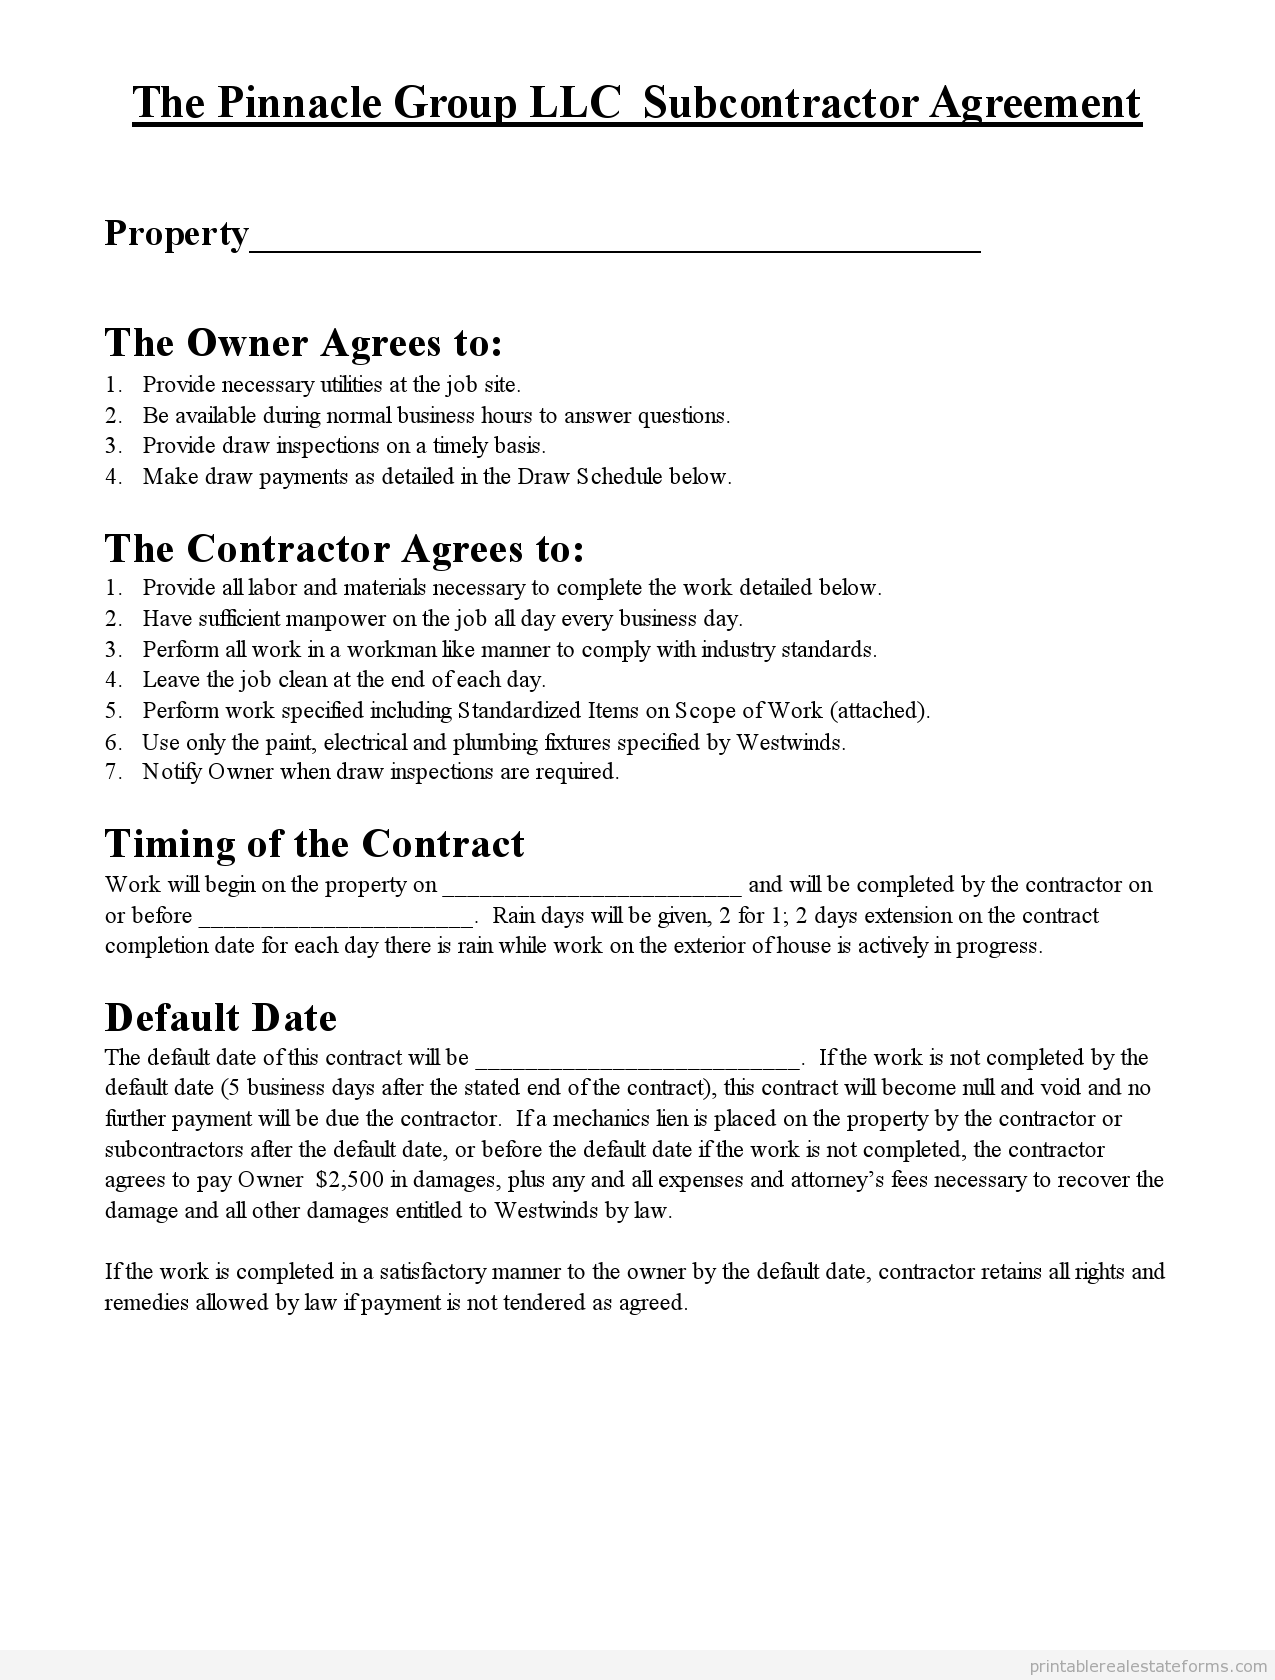 Free Printable Subcontractor Agreement Form Printable